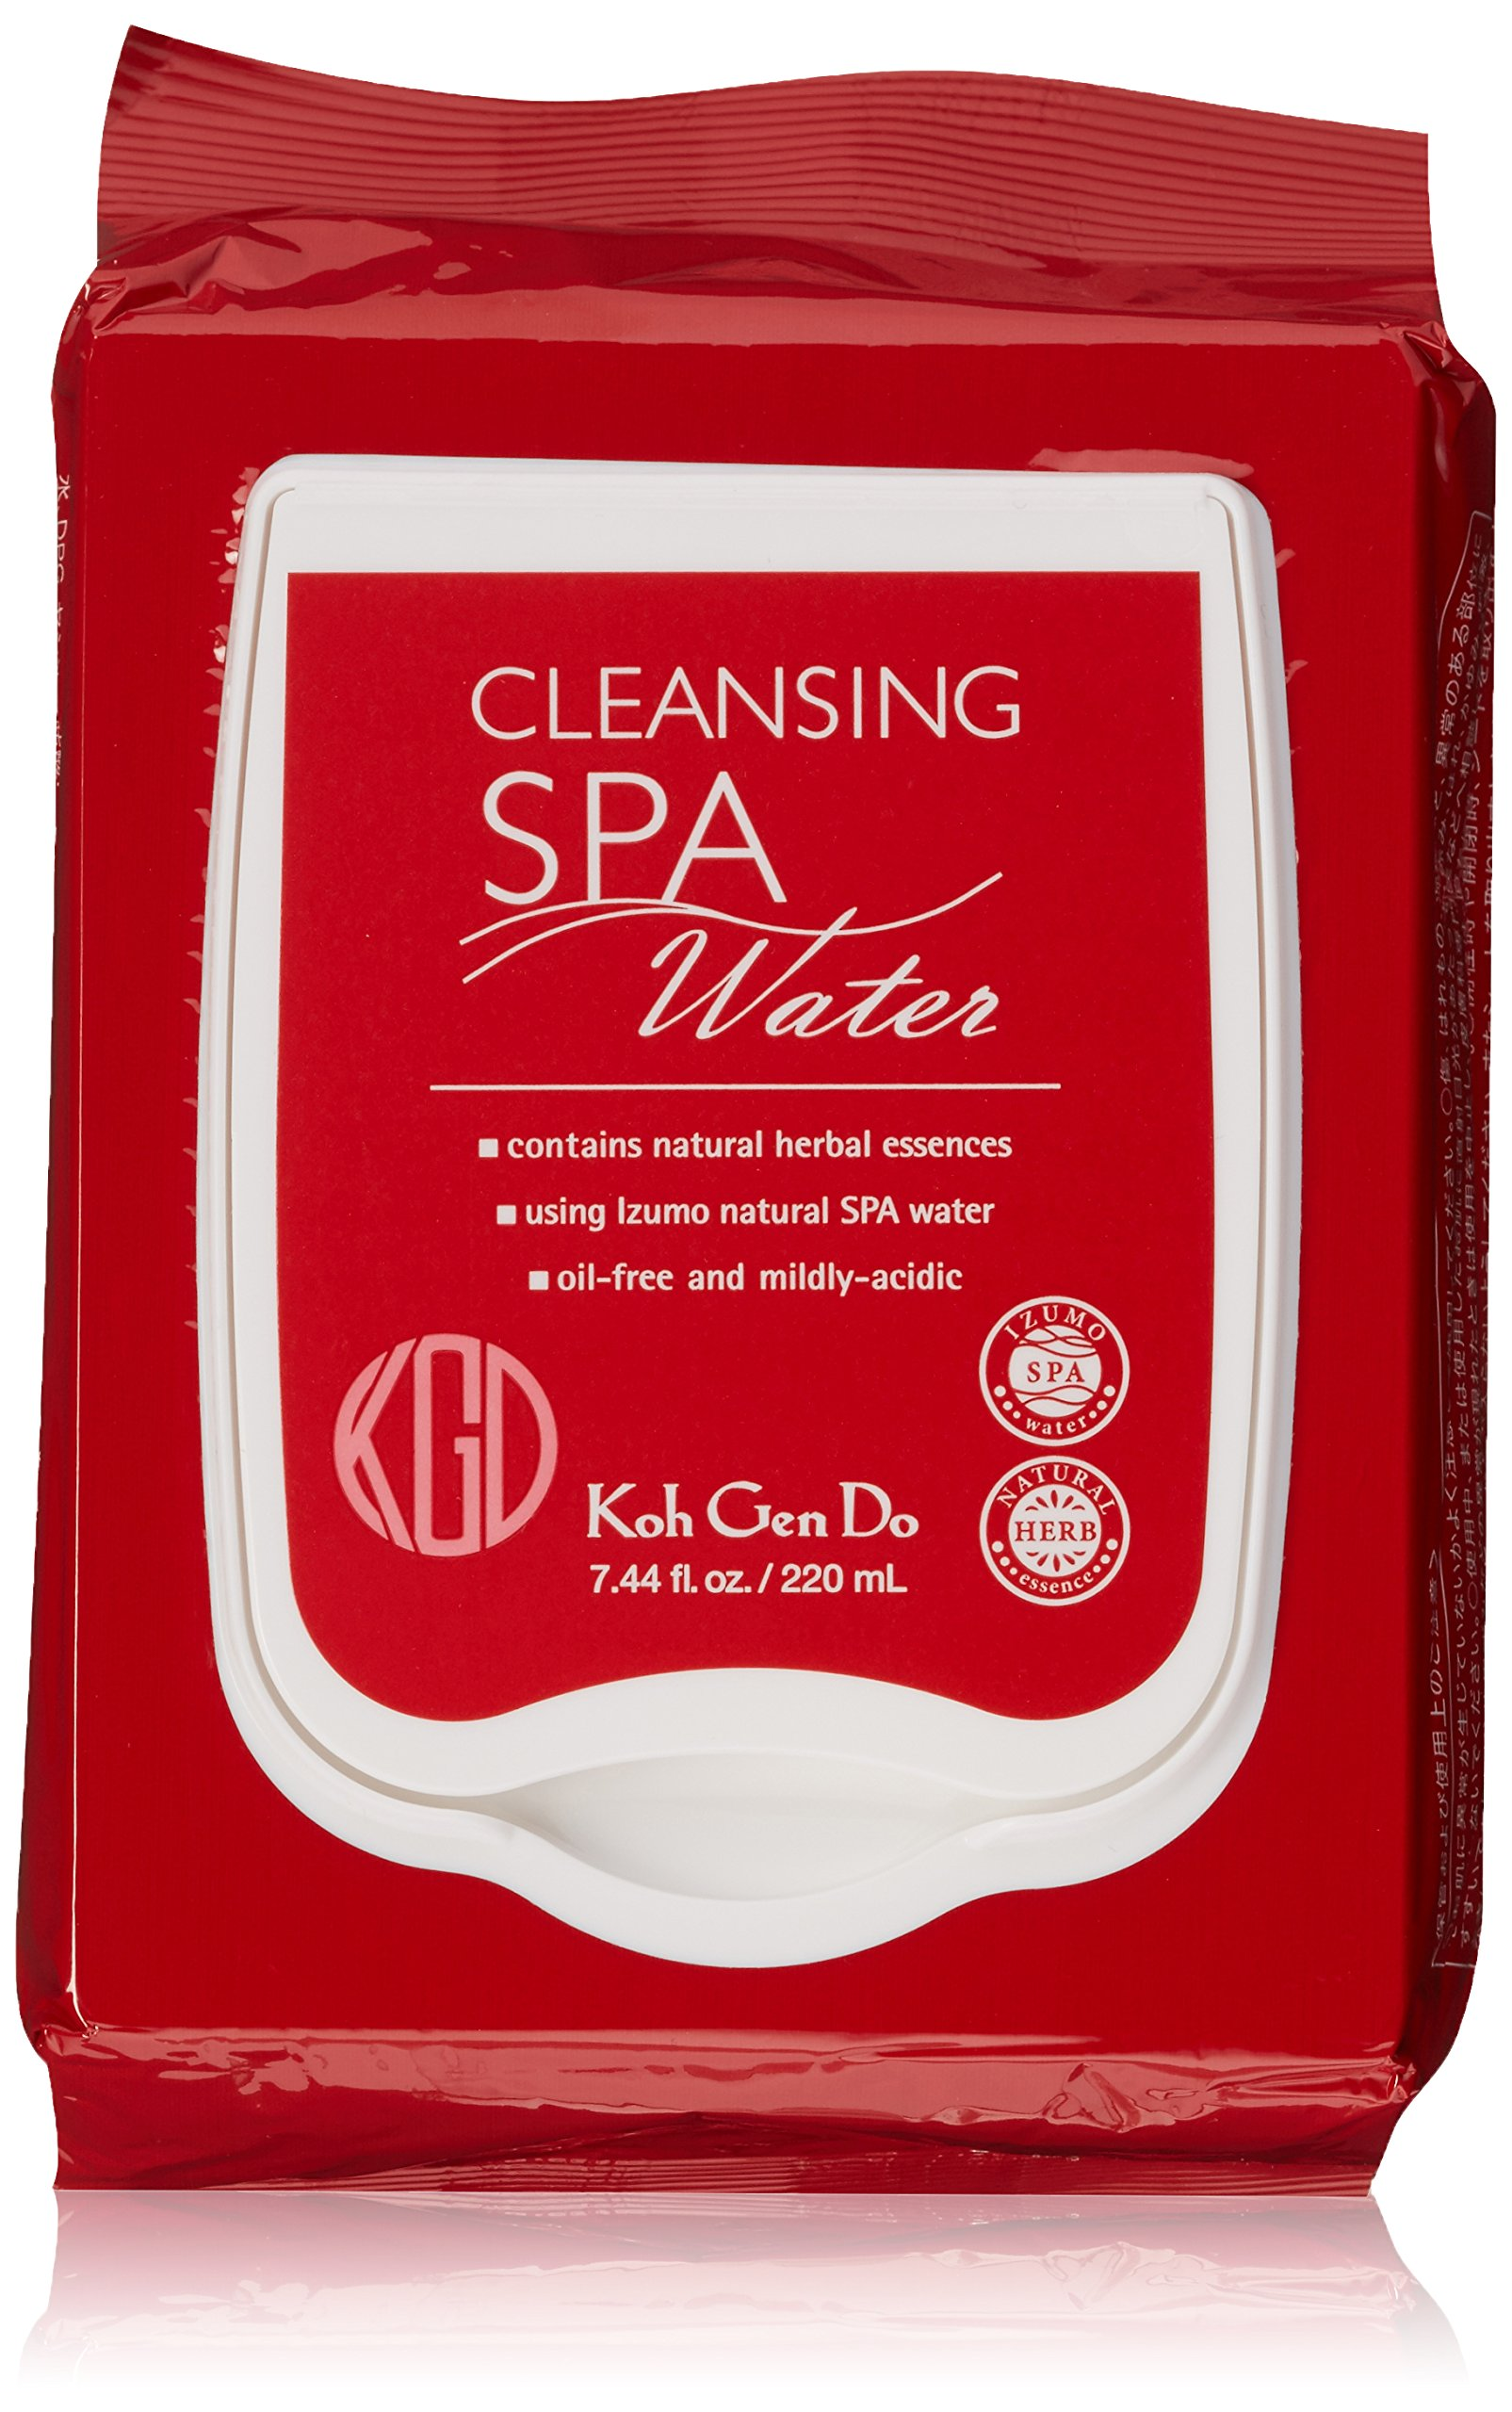 Koh Gen Do Spa Cleansing Water Cloth, Unscented, 40 ct. by Koh Gen Do (Image #1)